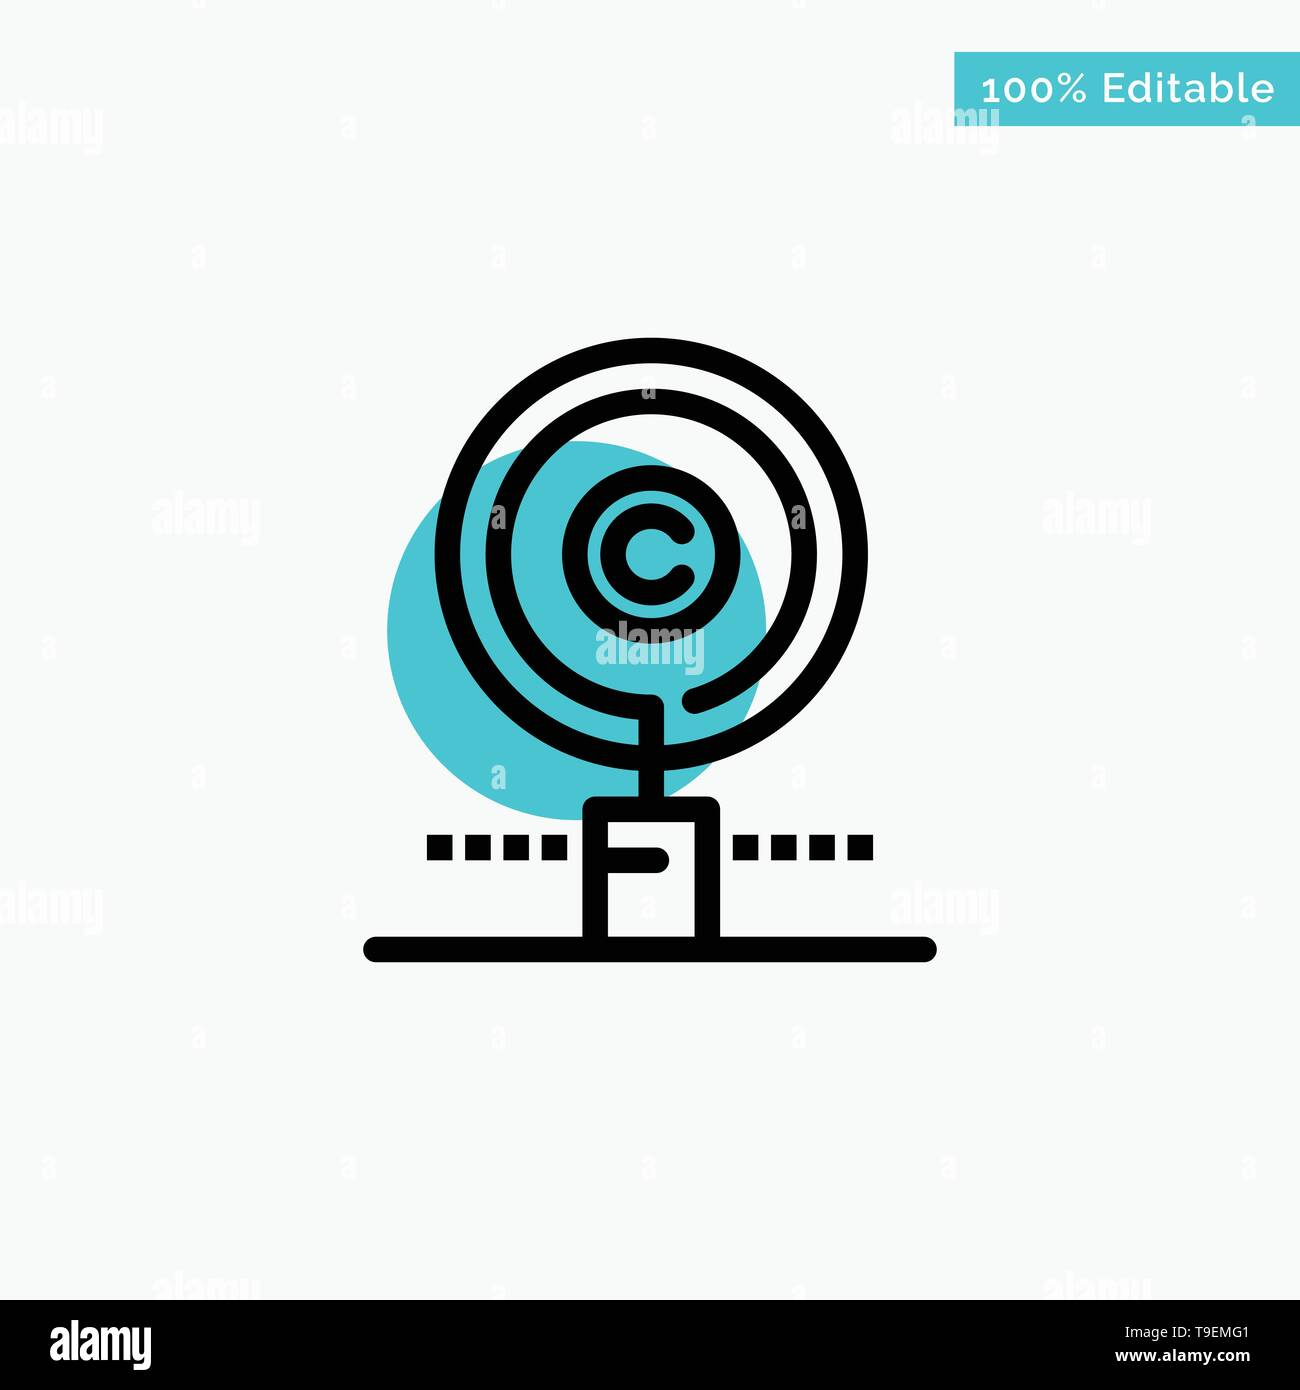 Content, Copyright, Find, Owner, Property turquoise highlight circle point Vector icon - Stock Image